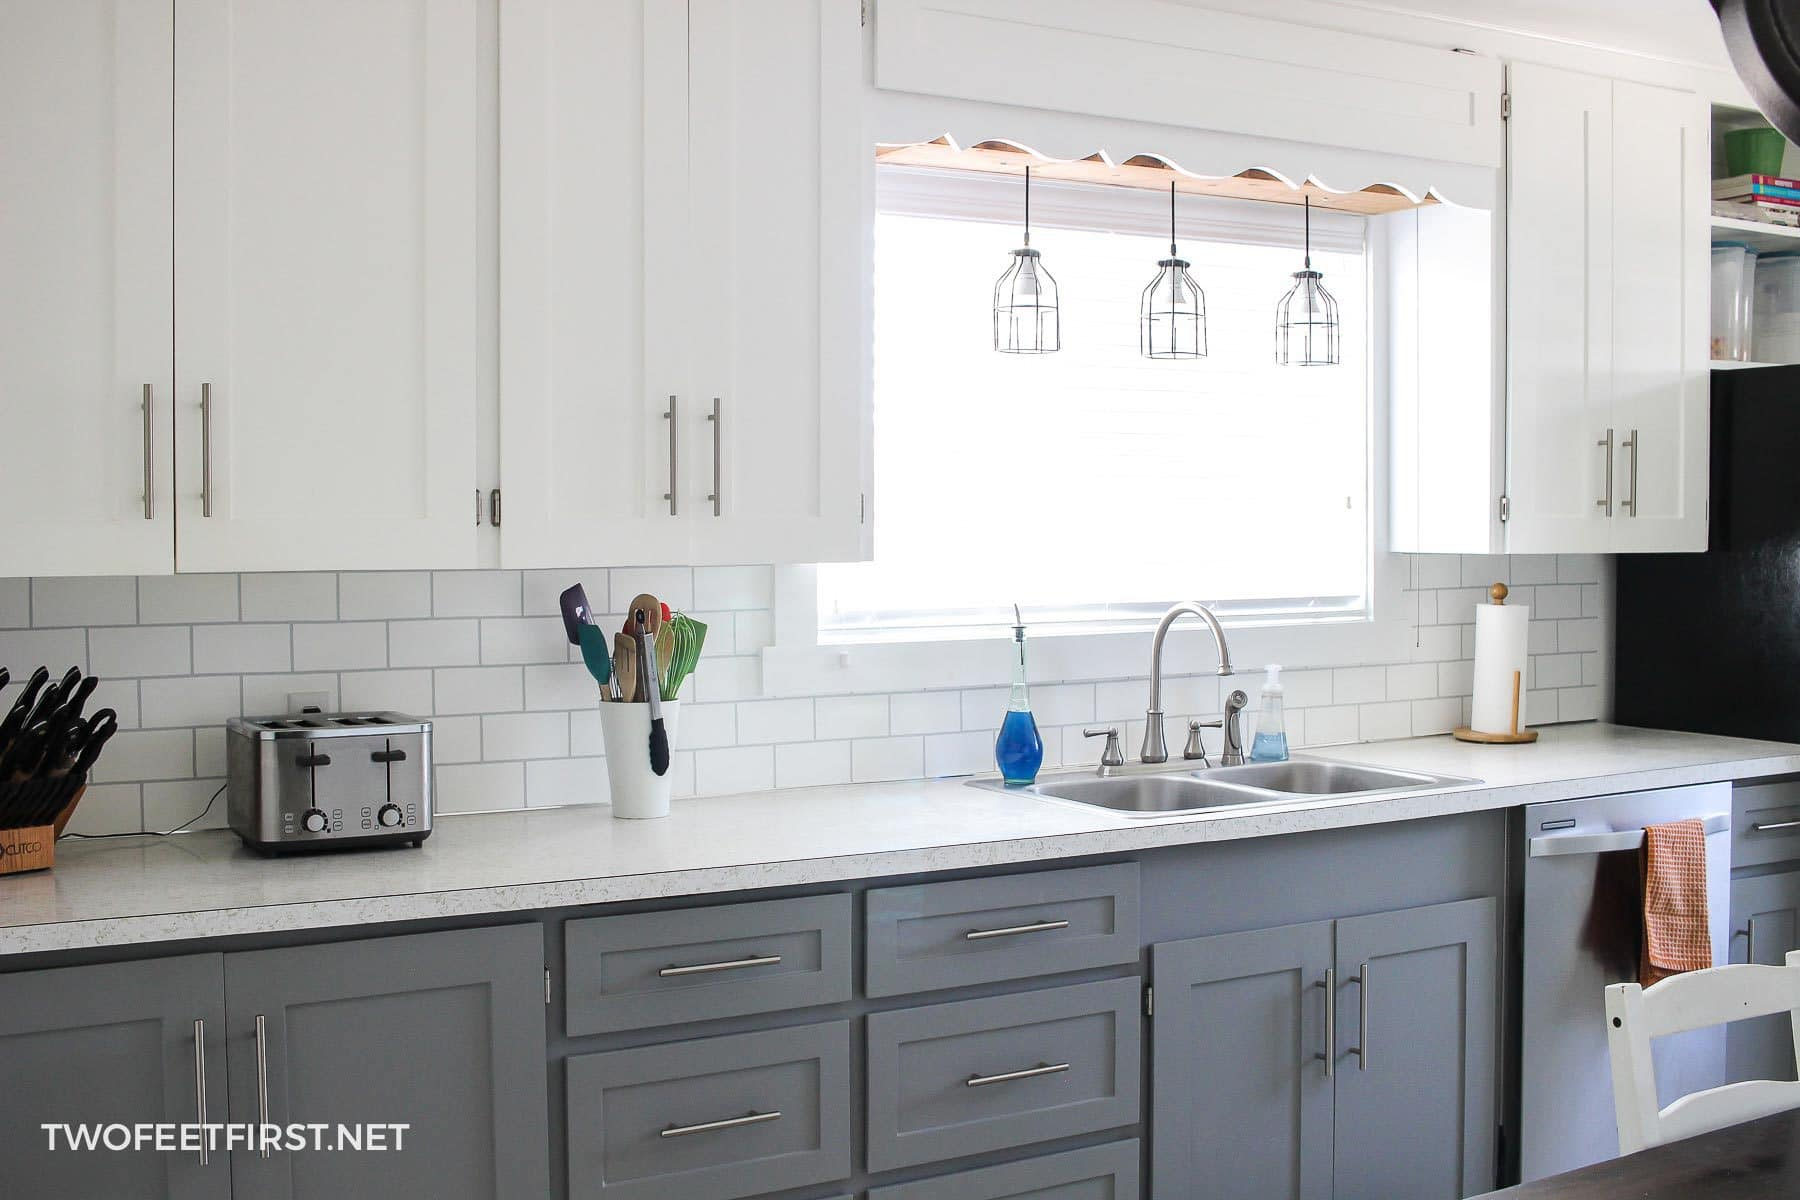 Genial Update Kitchen Cabinets Without Replacing Them